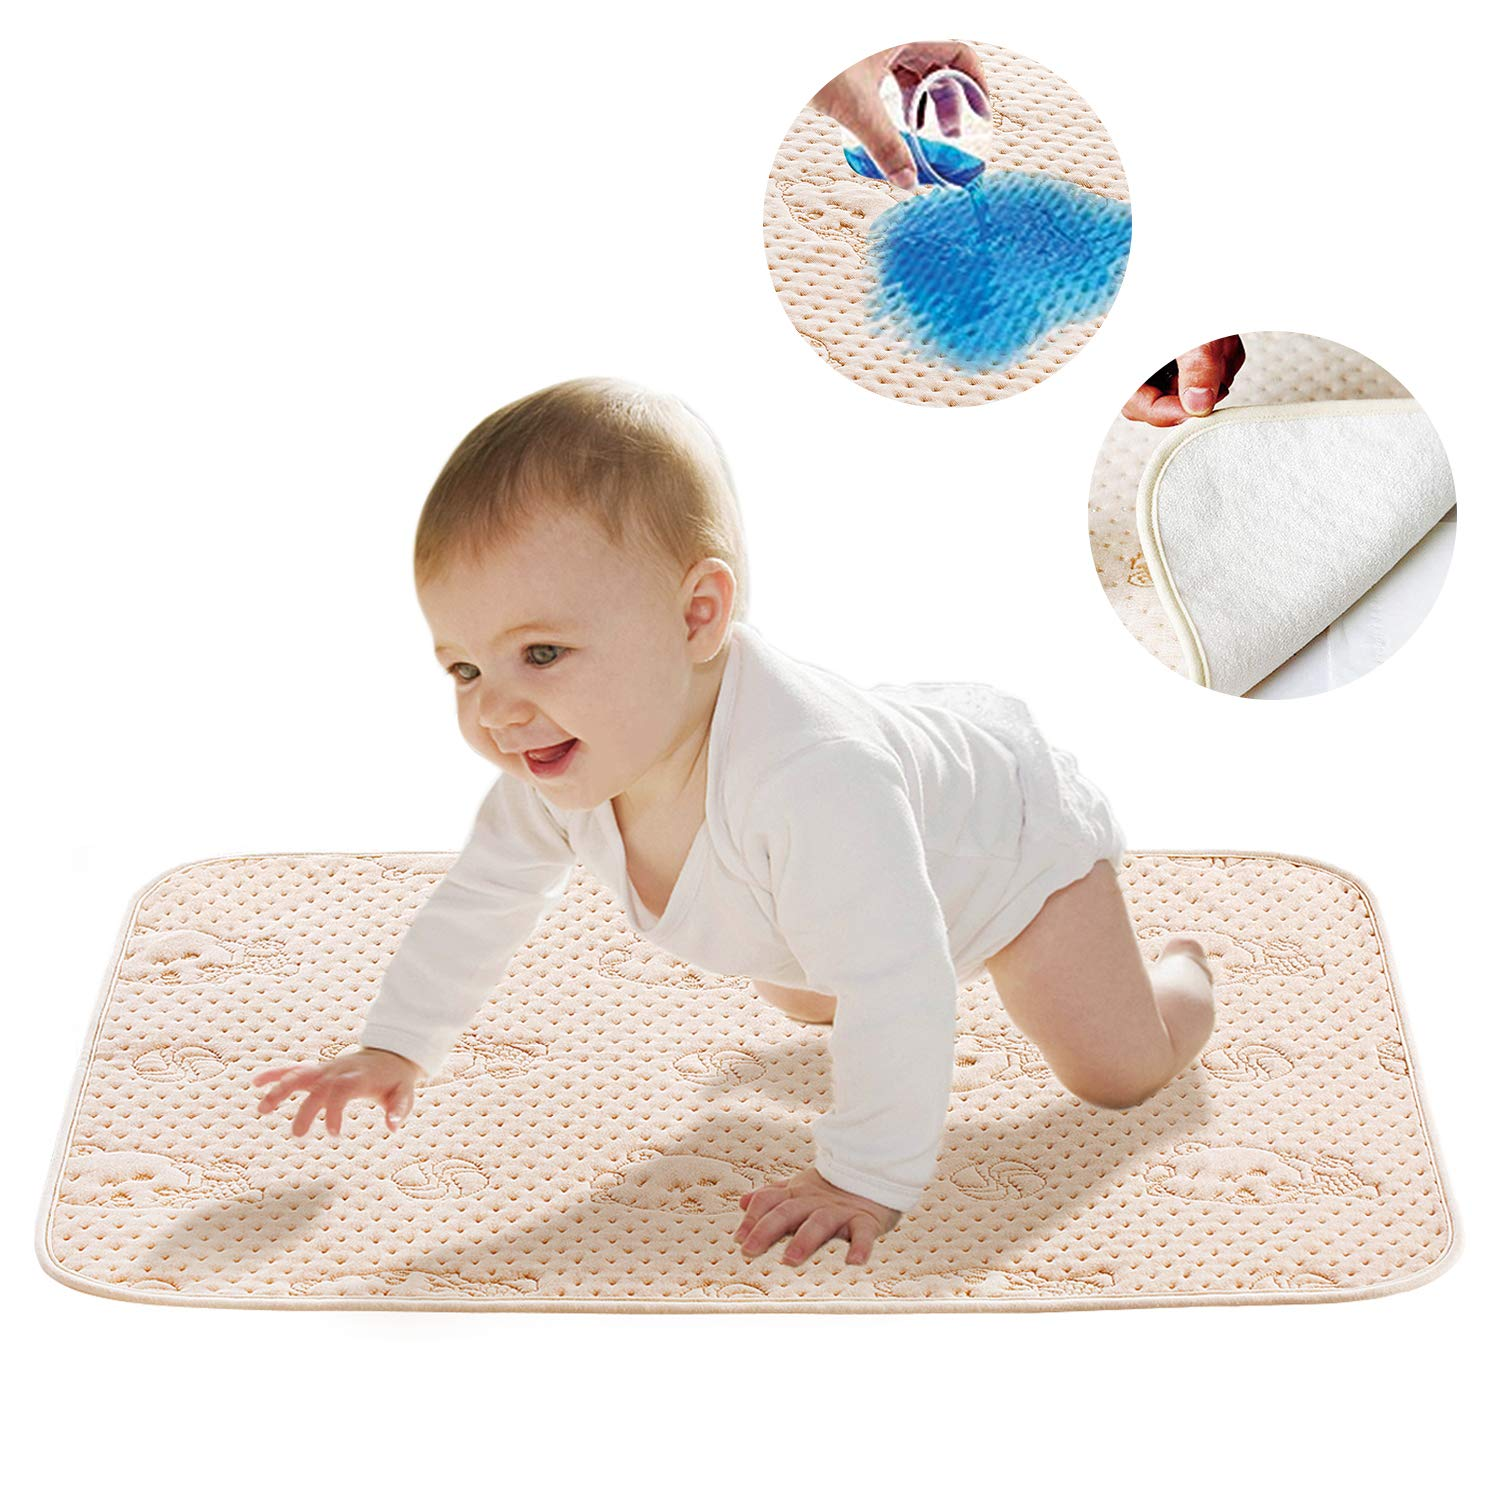 Portable Diaper Changing Pad,Incontinence Pads,Mifiatin Baby Waterproof Bed Pad Bed Wetting Pads Absorbent Pads Washable Bed Pads for Infants, Children and Pets